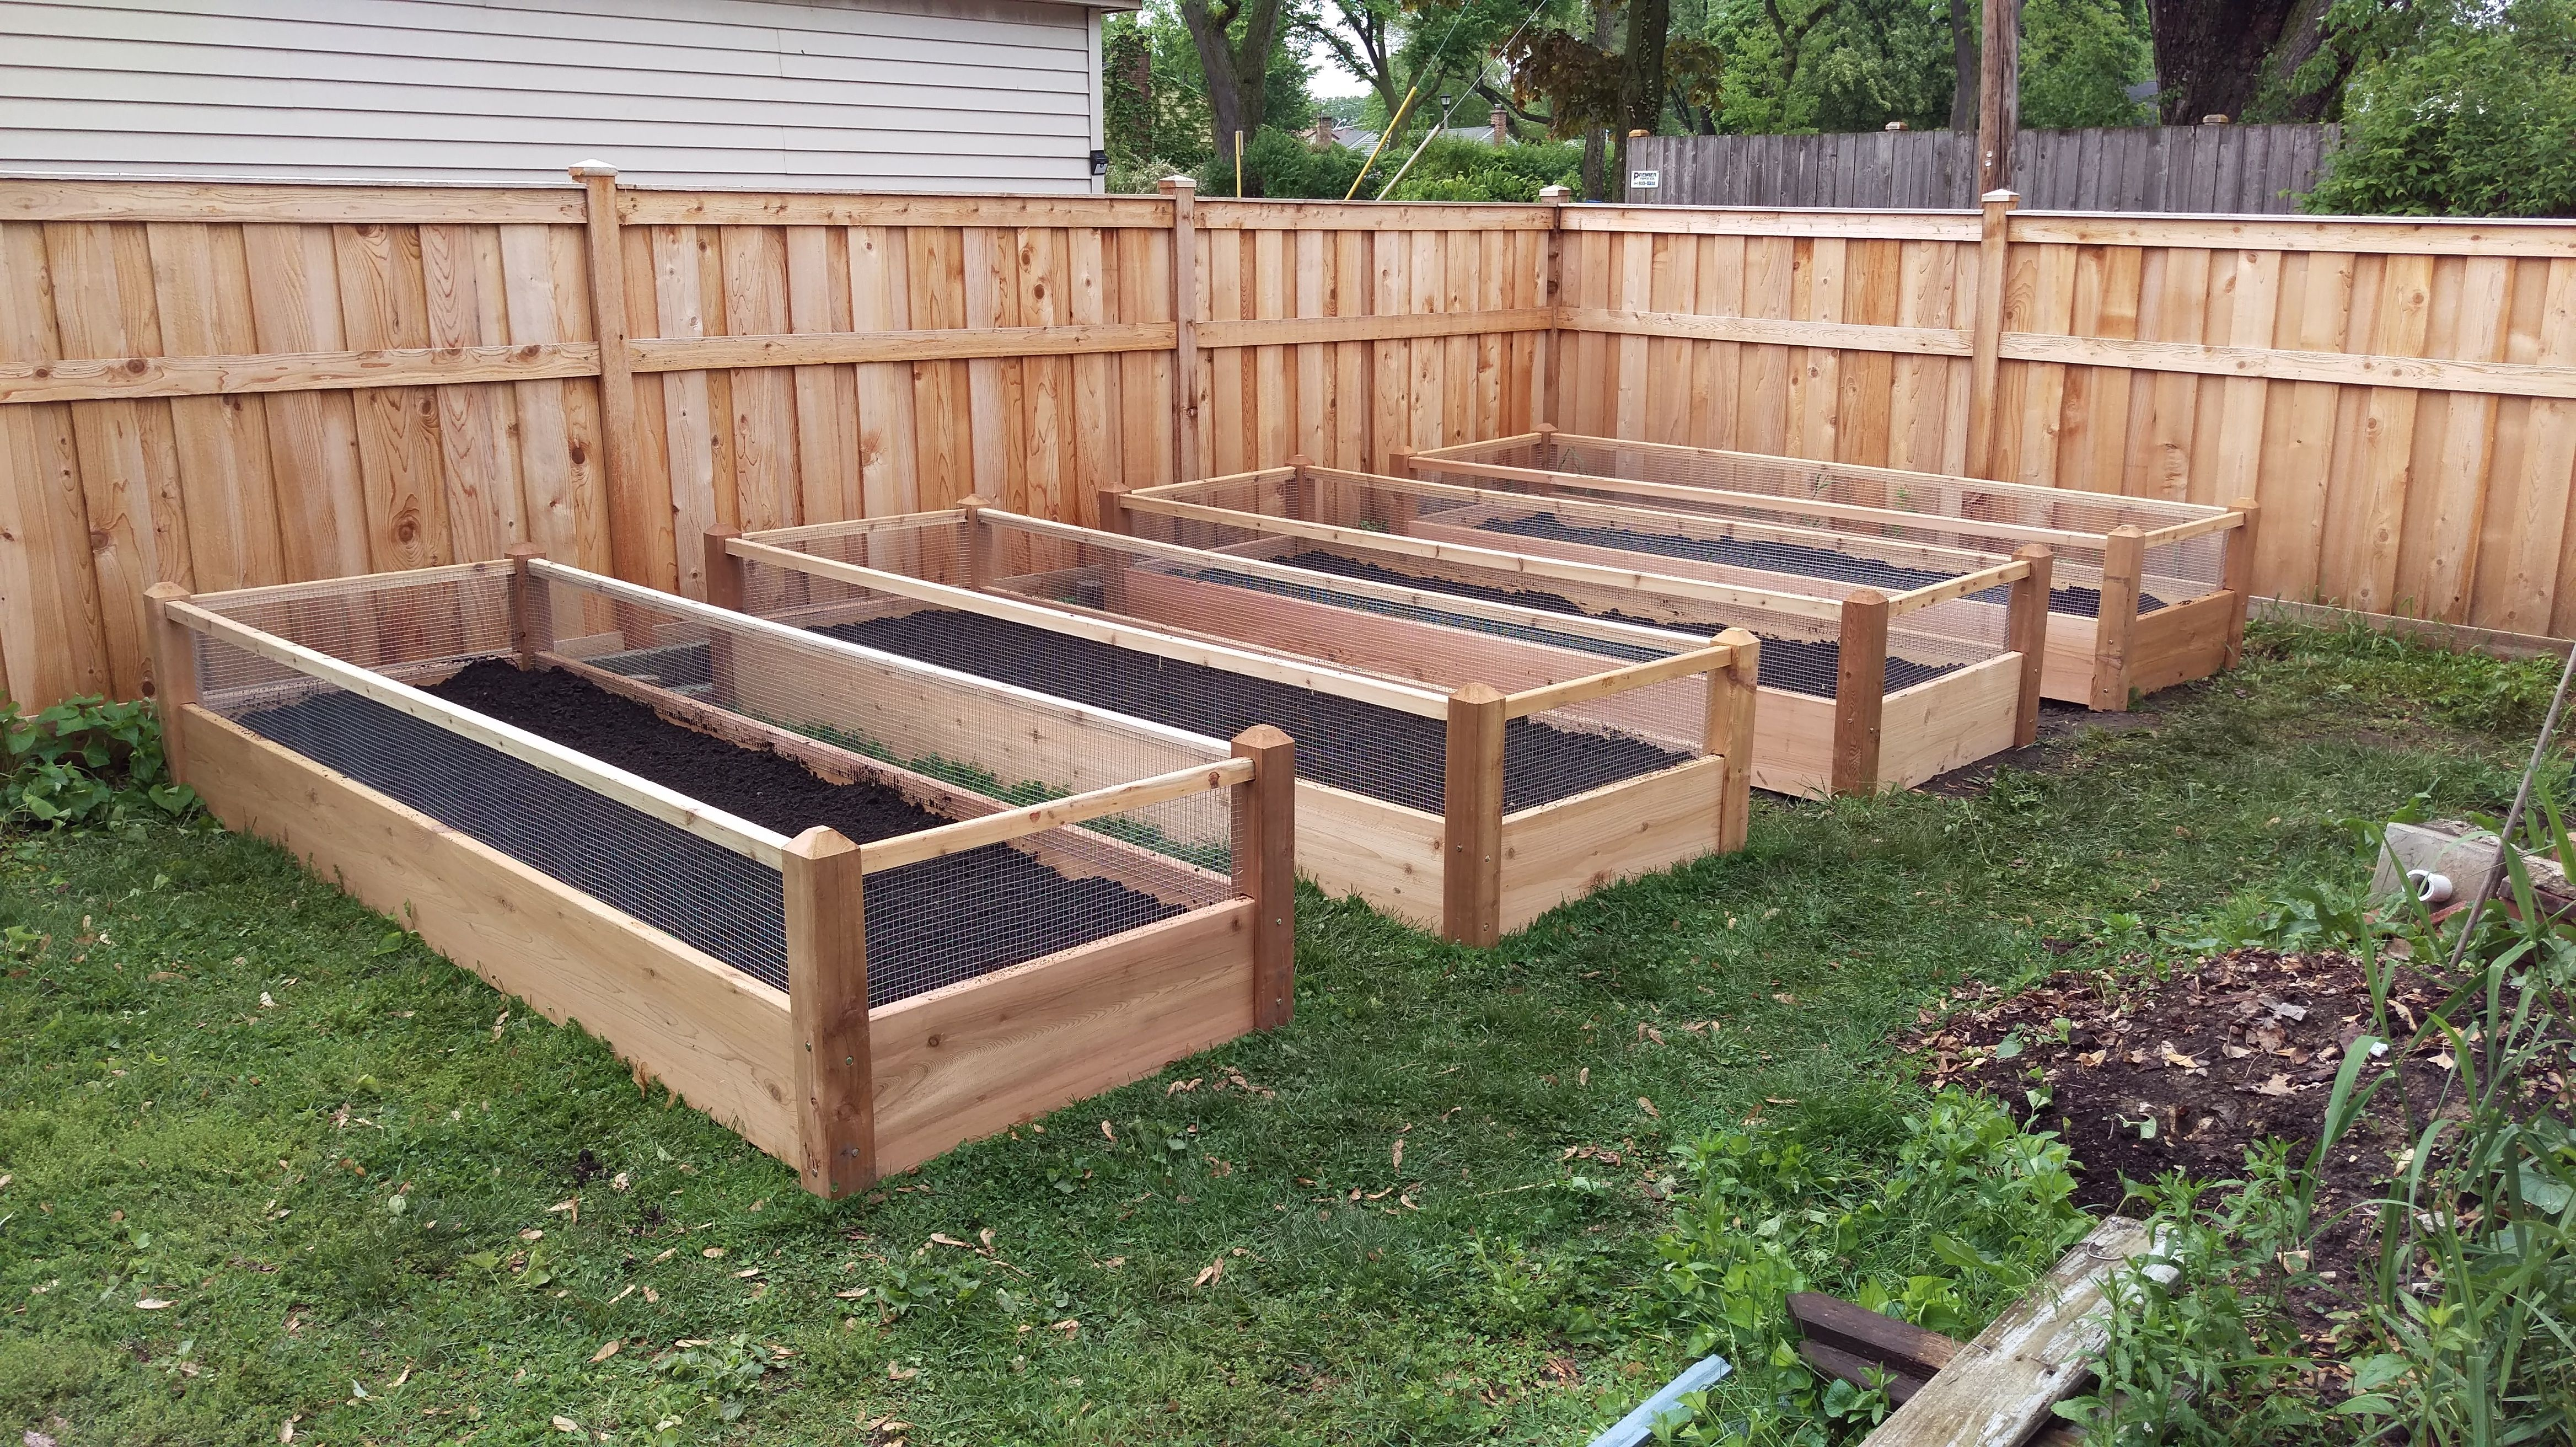 4 Four Raised Bed Gardens 3x8x2 With Images Raised Bed Garden